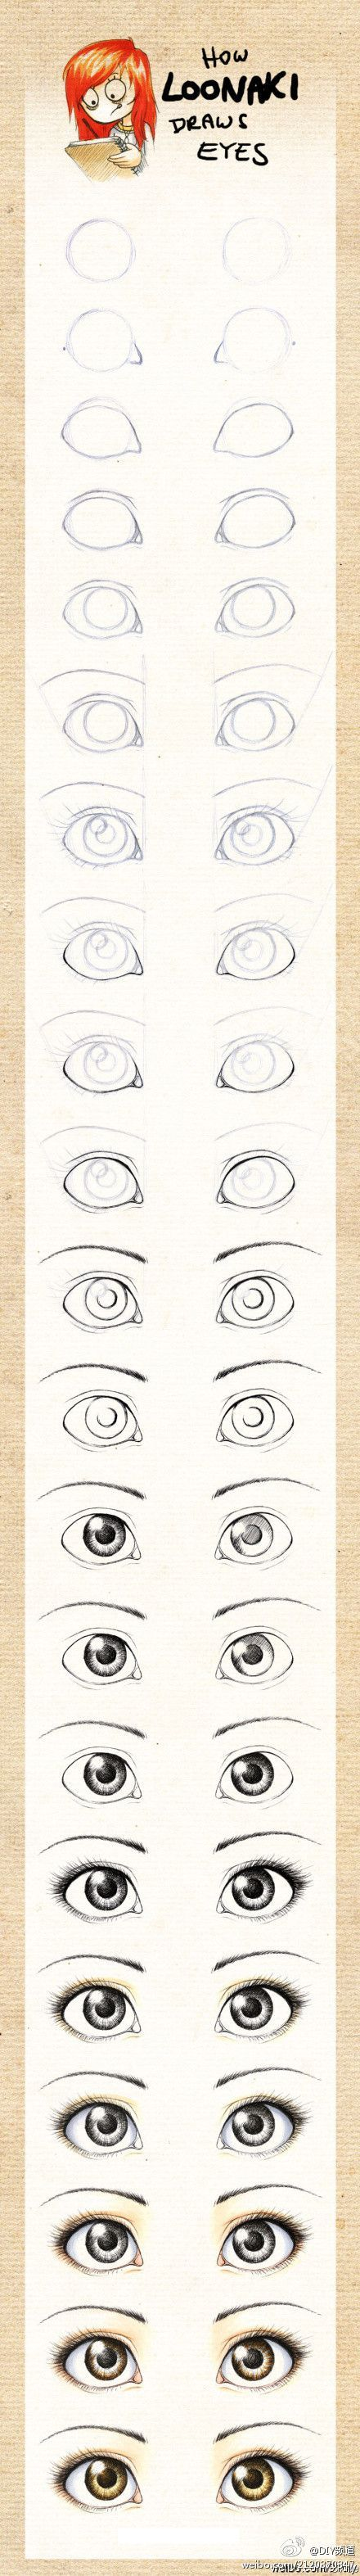 How to draw eyes….um why do I think this is cute? Anyways I guess I may have to…